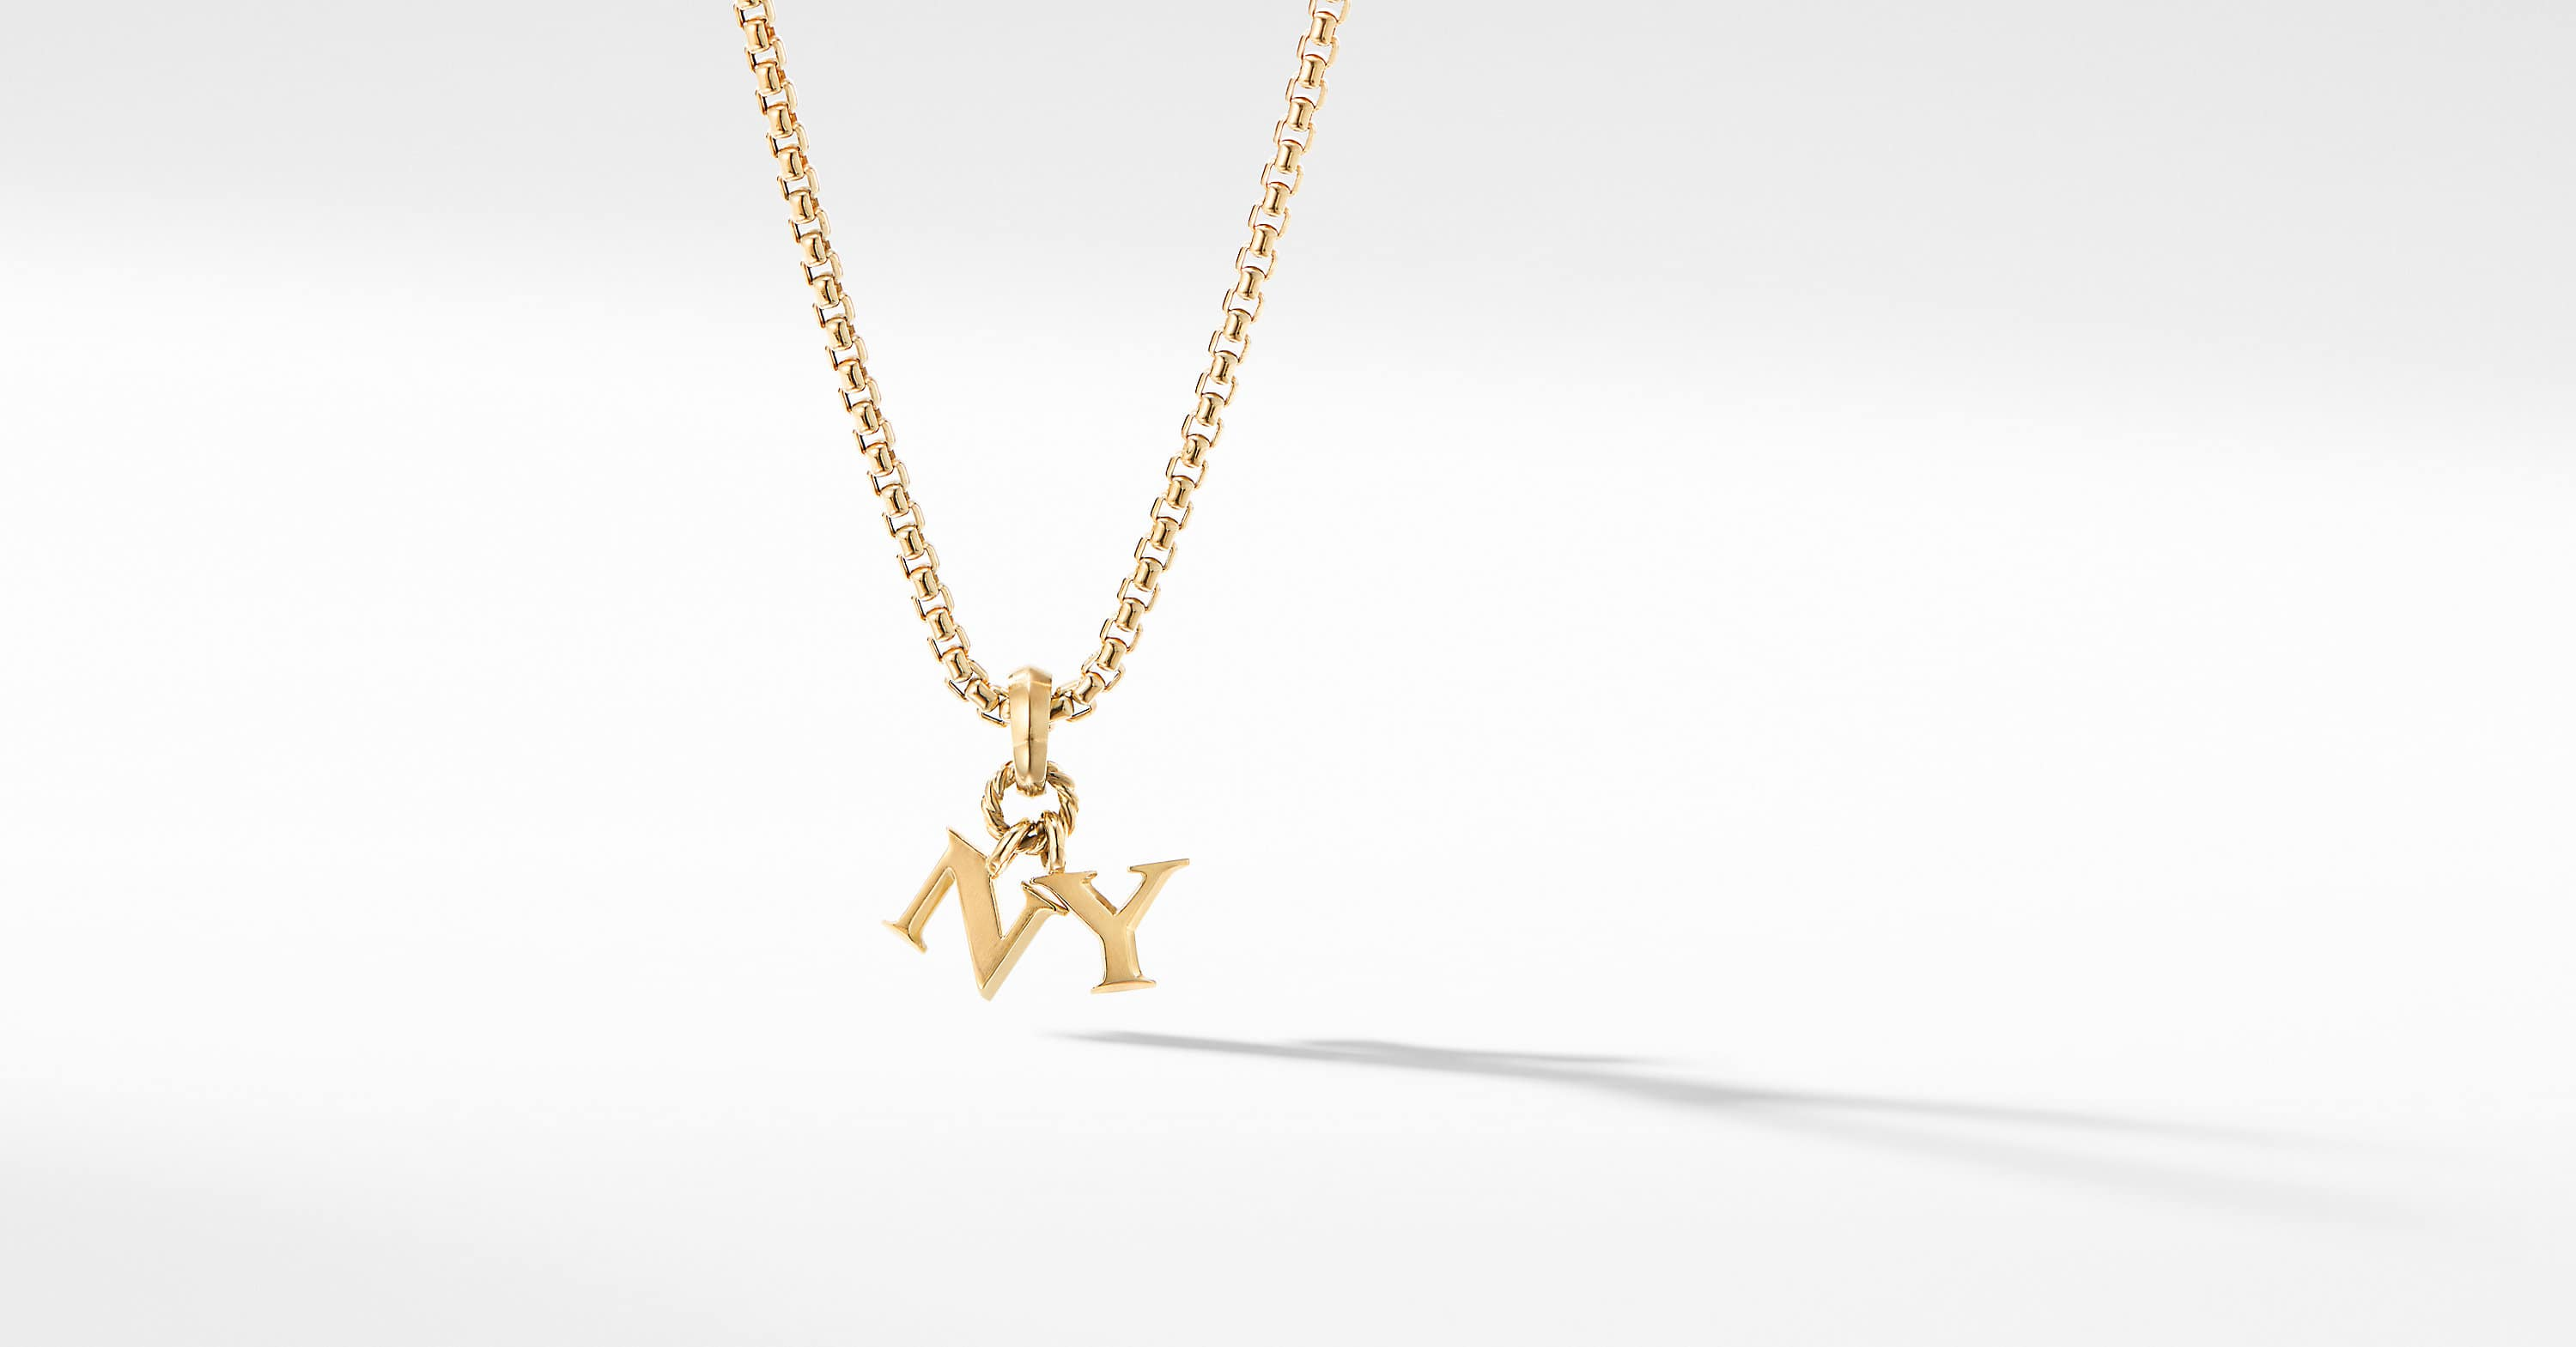 NY Charm in 18K Yellow Gold